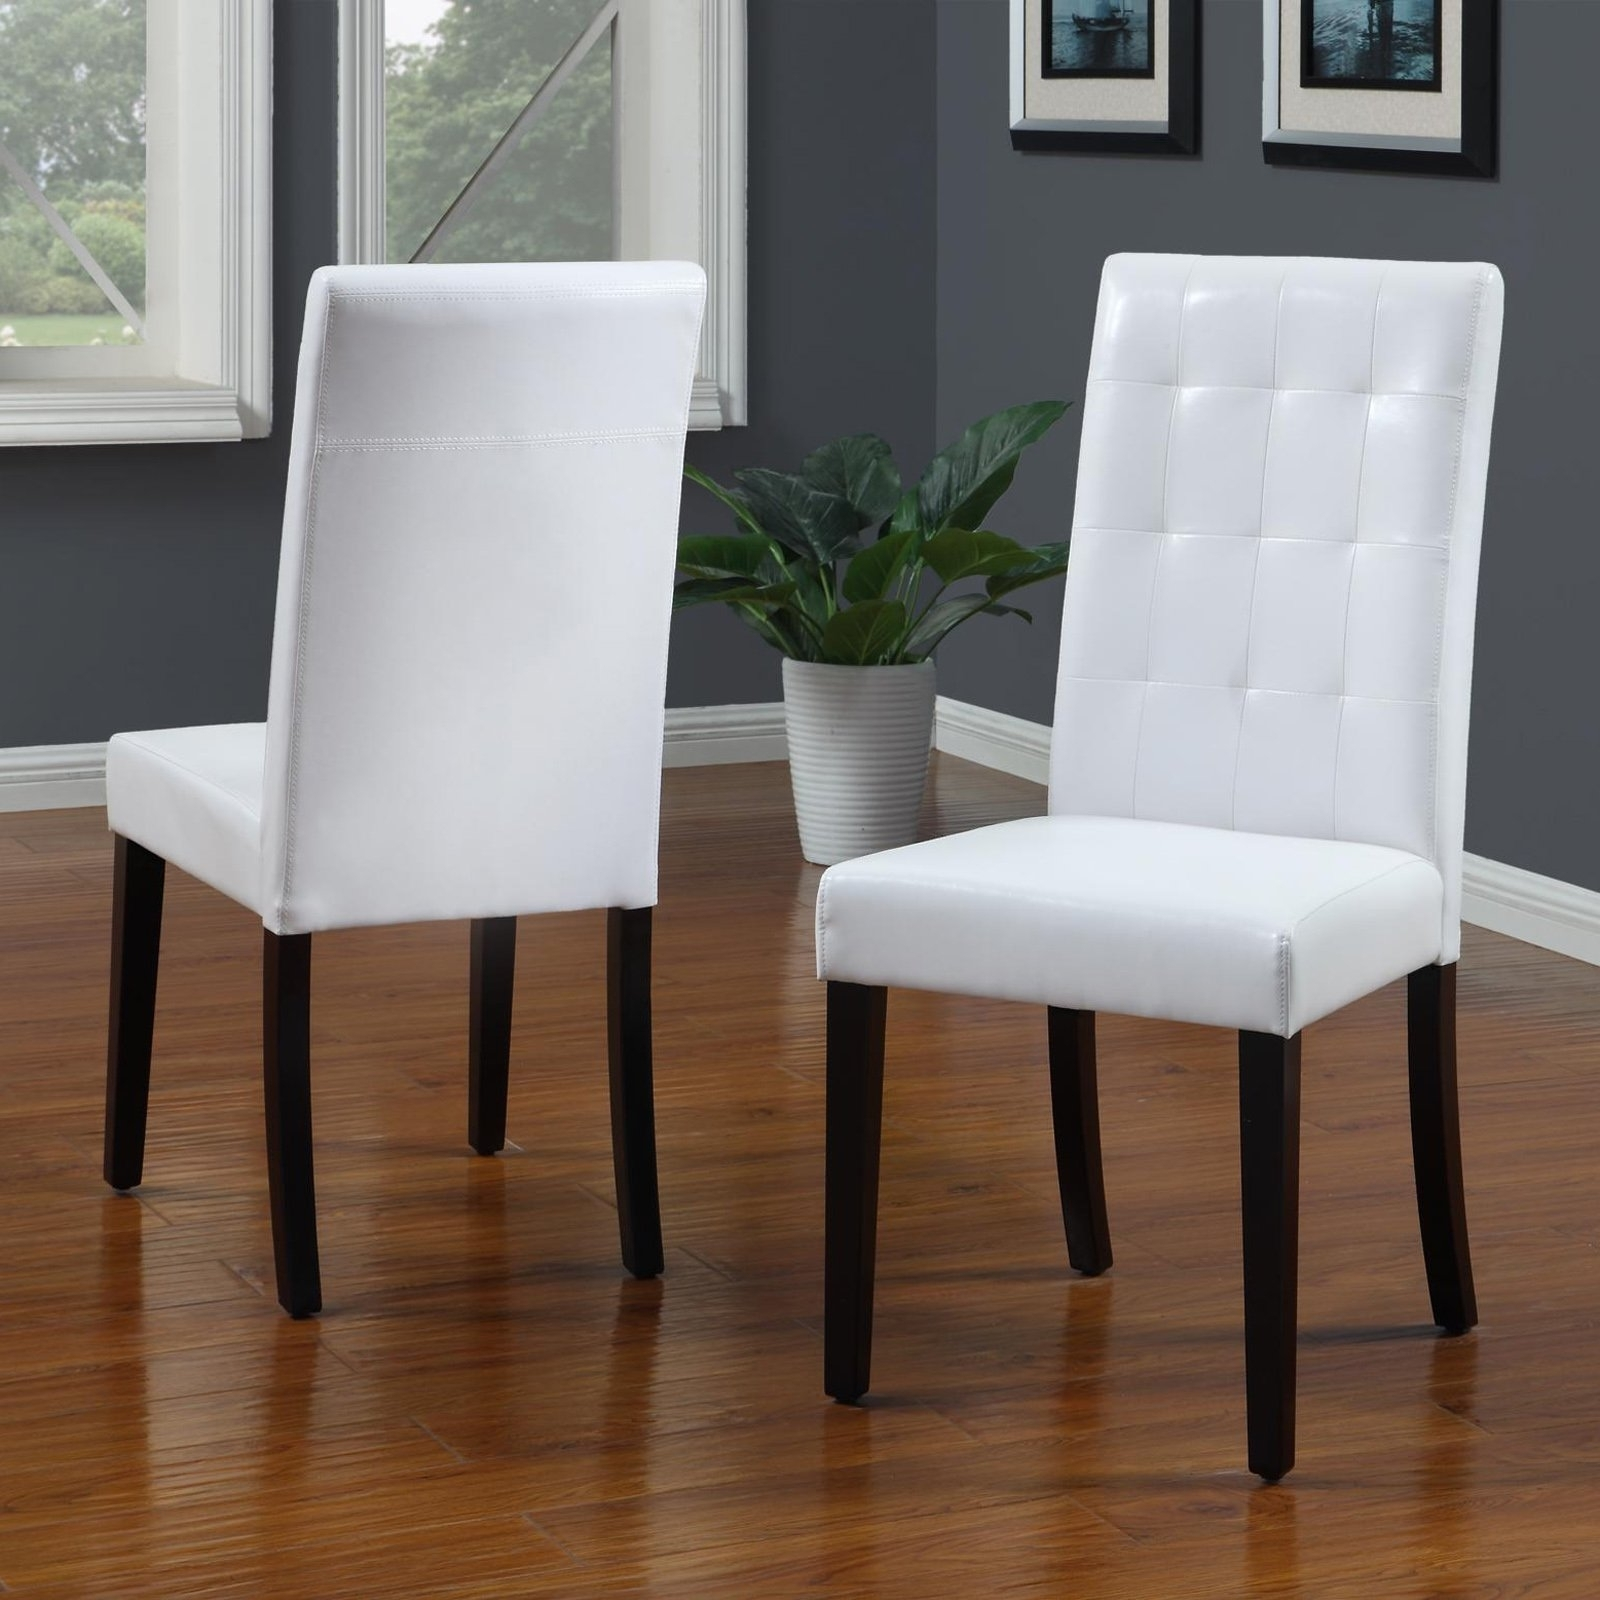 White Leather Dining Chairs To Spice Up Your Dining Room – Home In Best And Newest White Leather Dining Chairs (View 23 of 25)